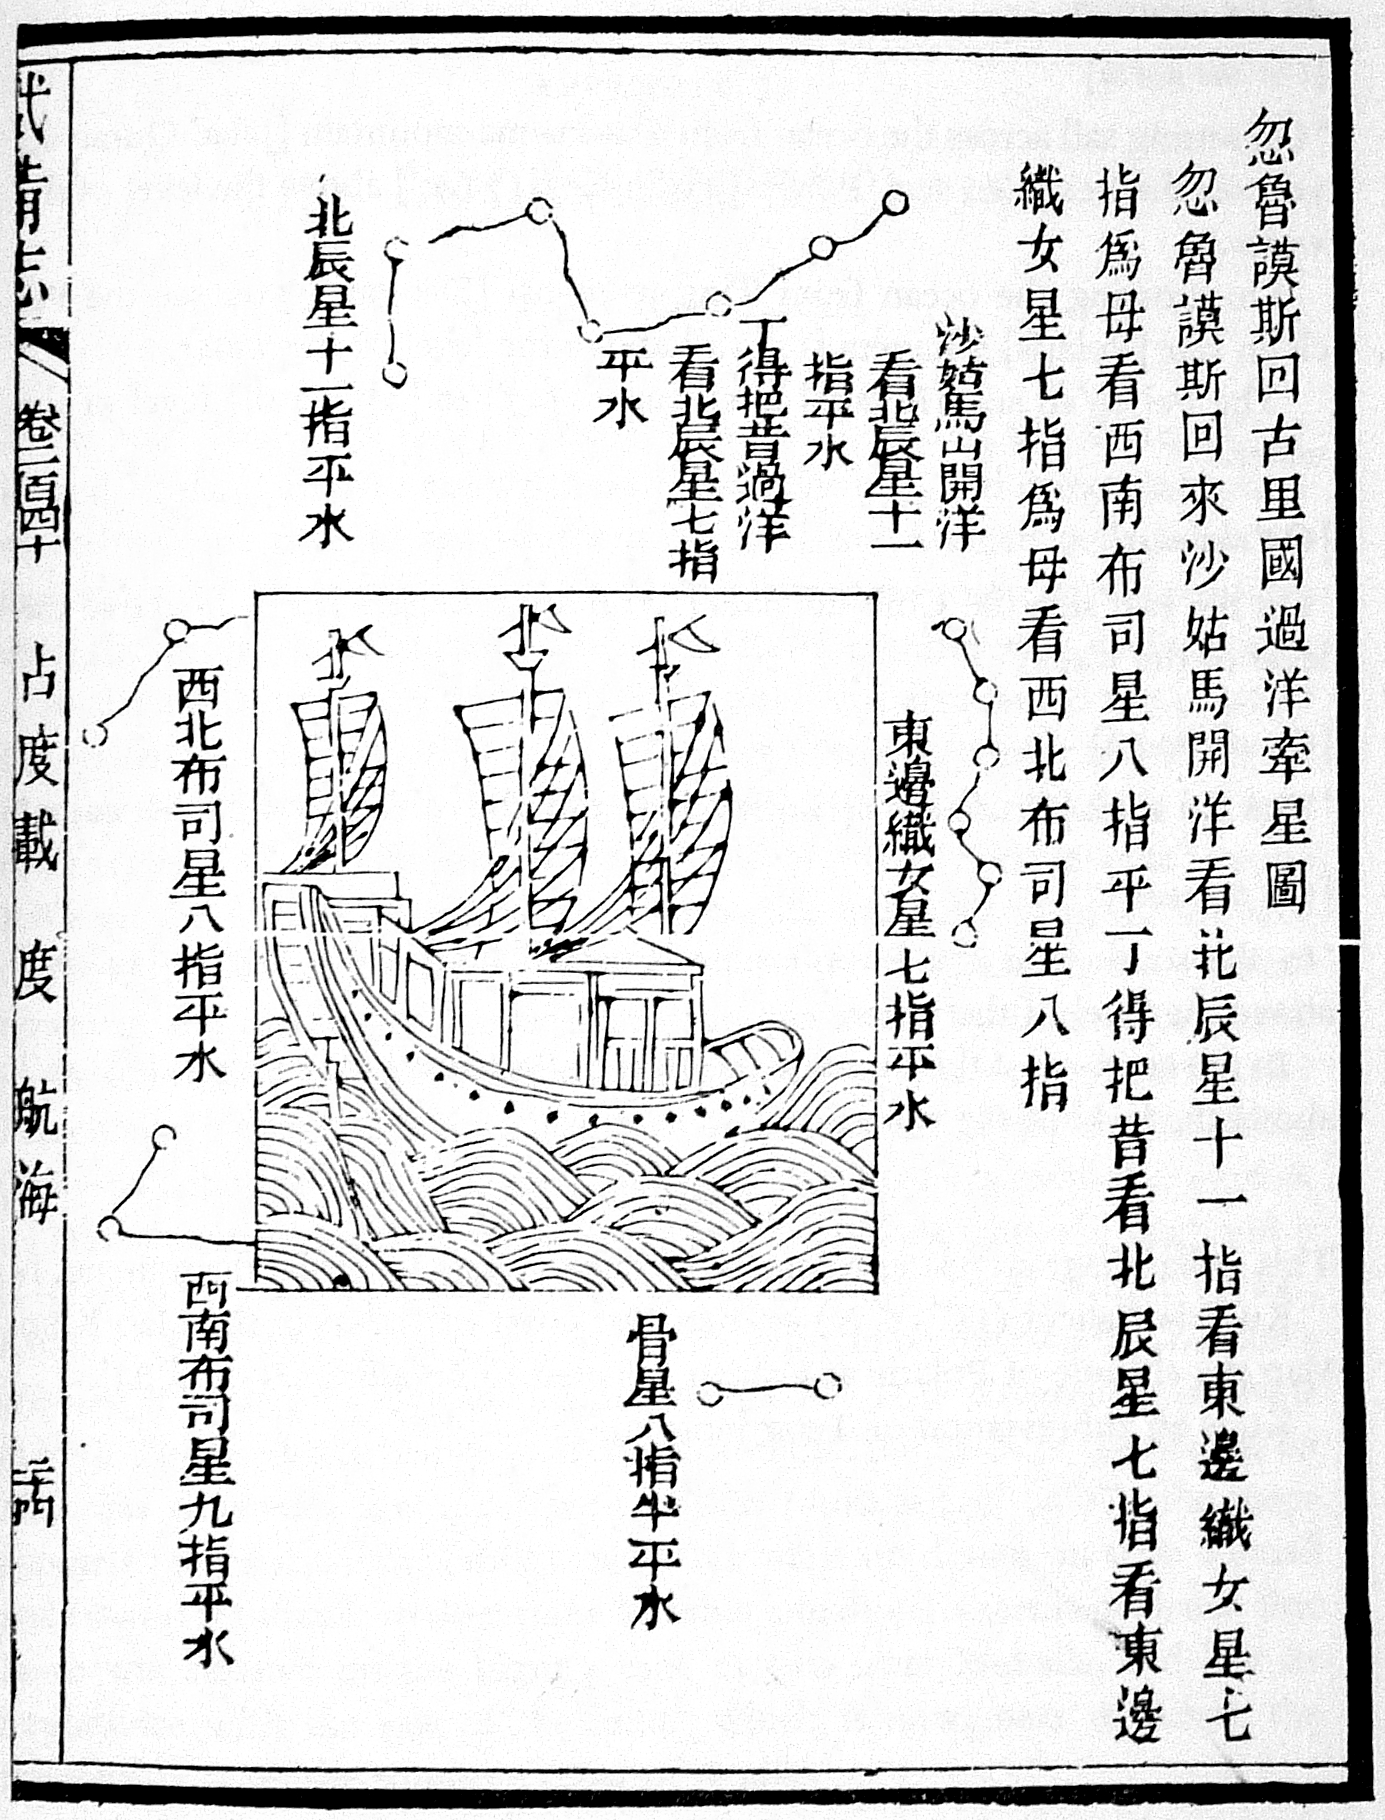 Stellar diagram features a drawing of a ship surrounded by Chinese characters